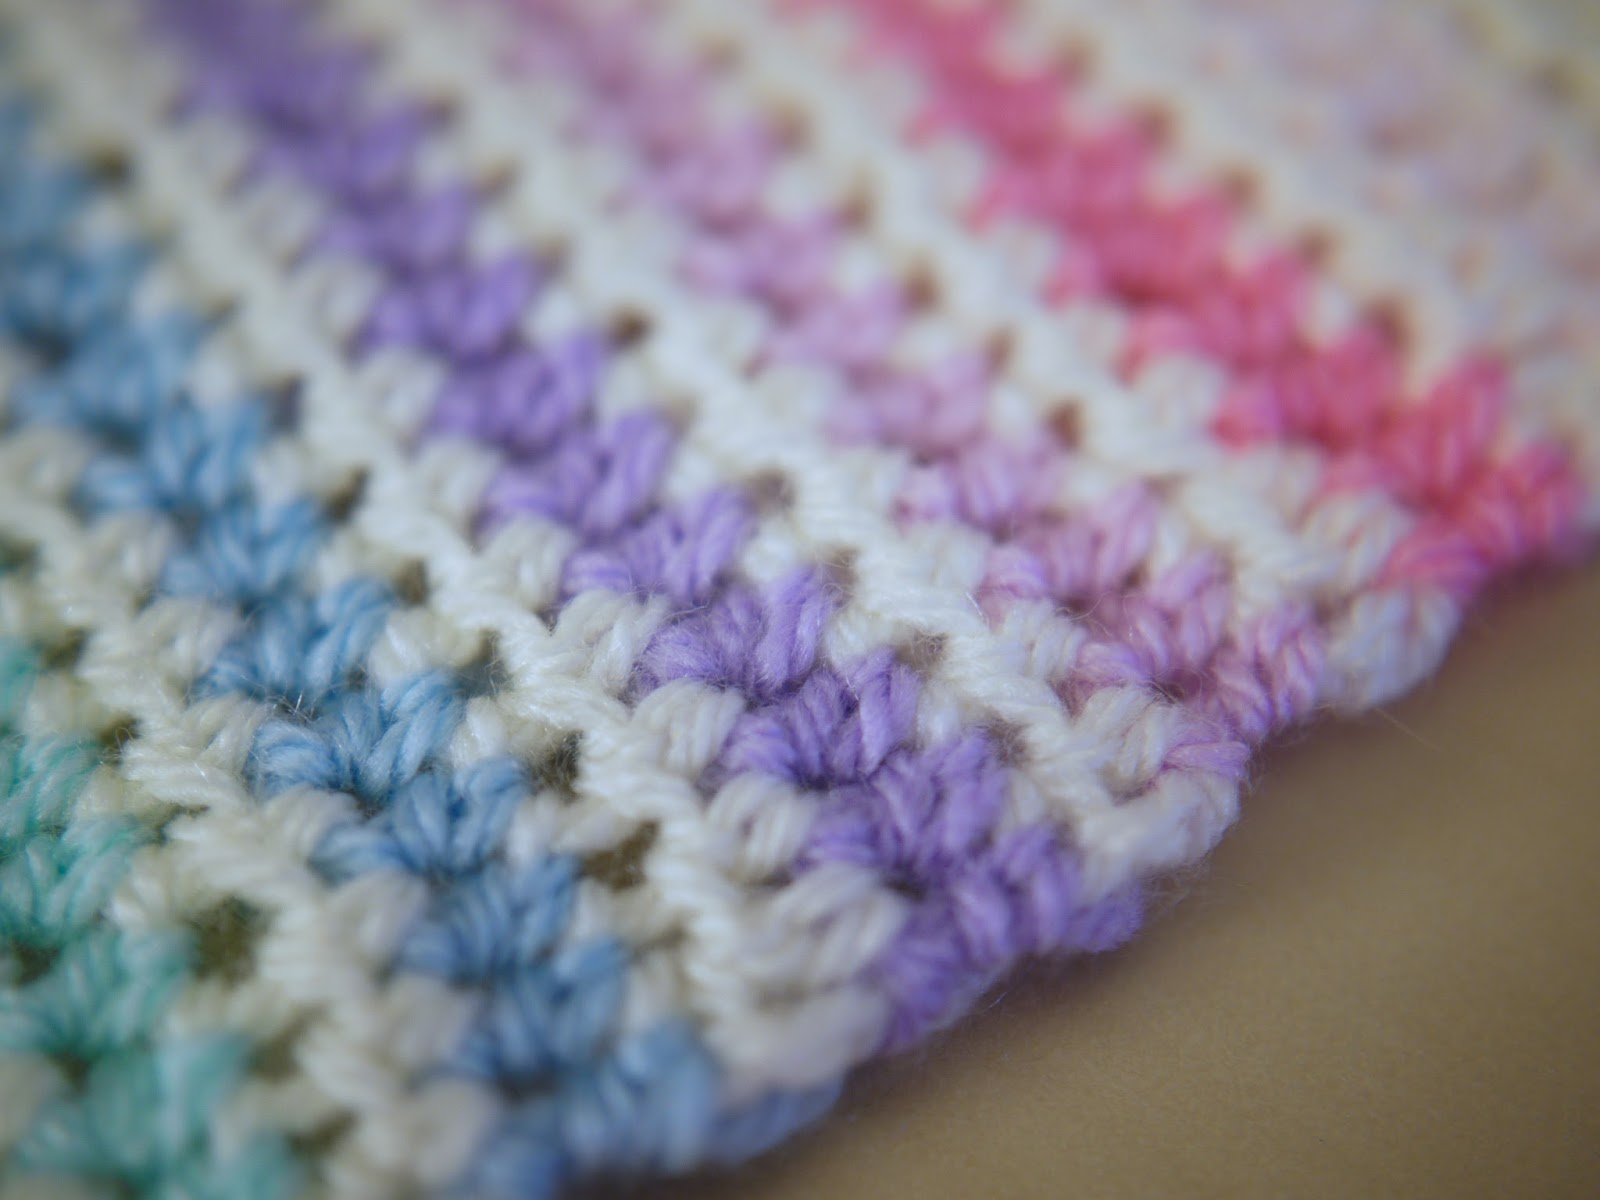 Crochet Stitches Bella Coco : ... Treble/Half Double stripe crochet pattern - Bella Coco by Sarah-Jayne